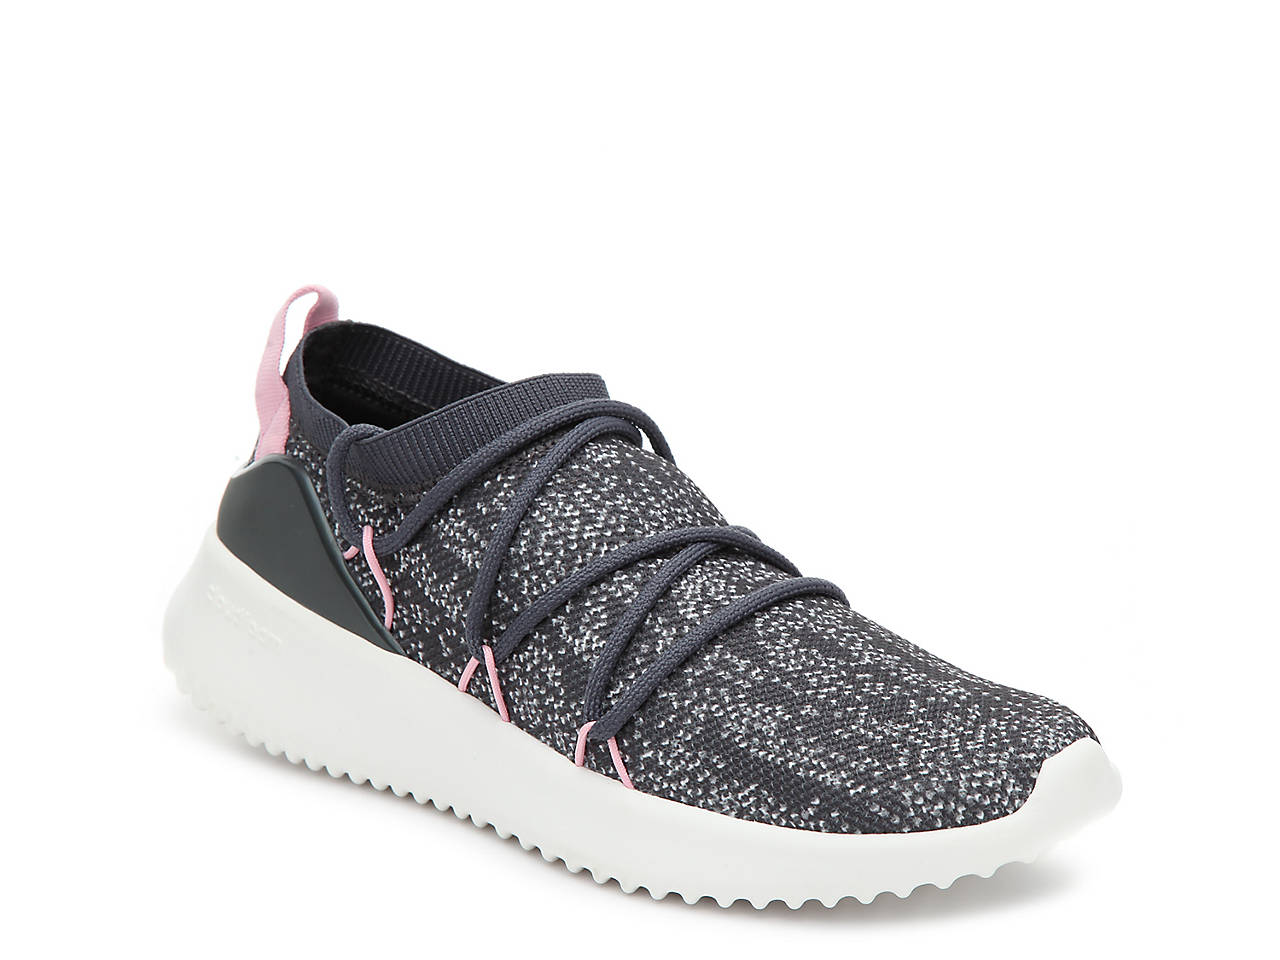 3beaae6b288180 adidas Ultimamotion Sneaker - Women s Women s Shoes